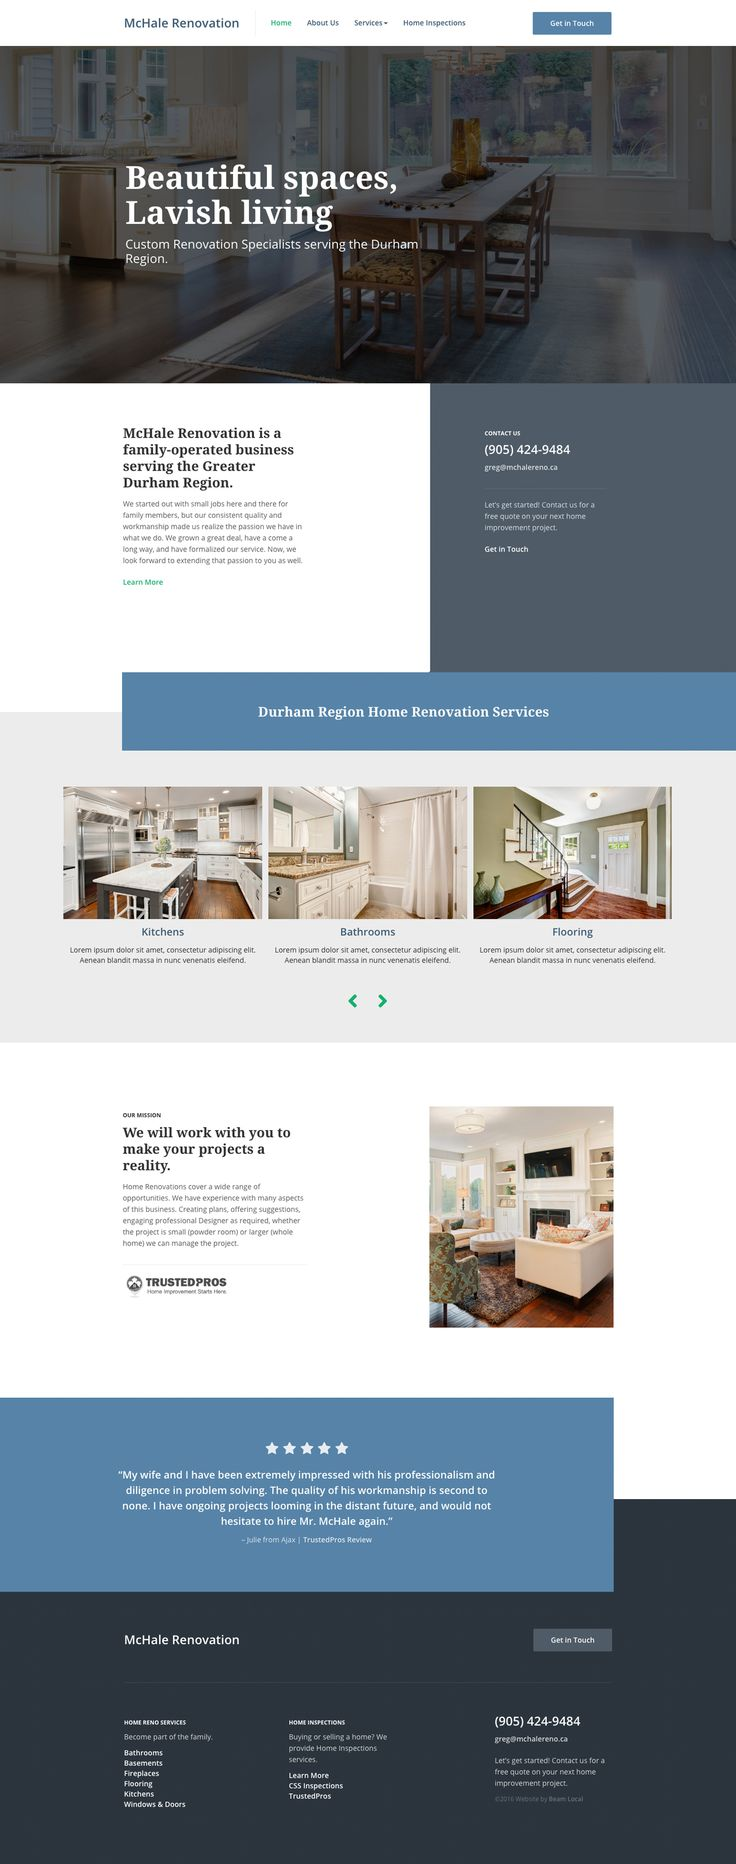 Looking For Top Trends In Contractor Website Designs Want To Know What Makes A Good